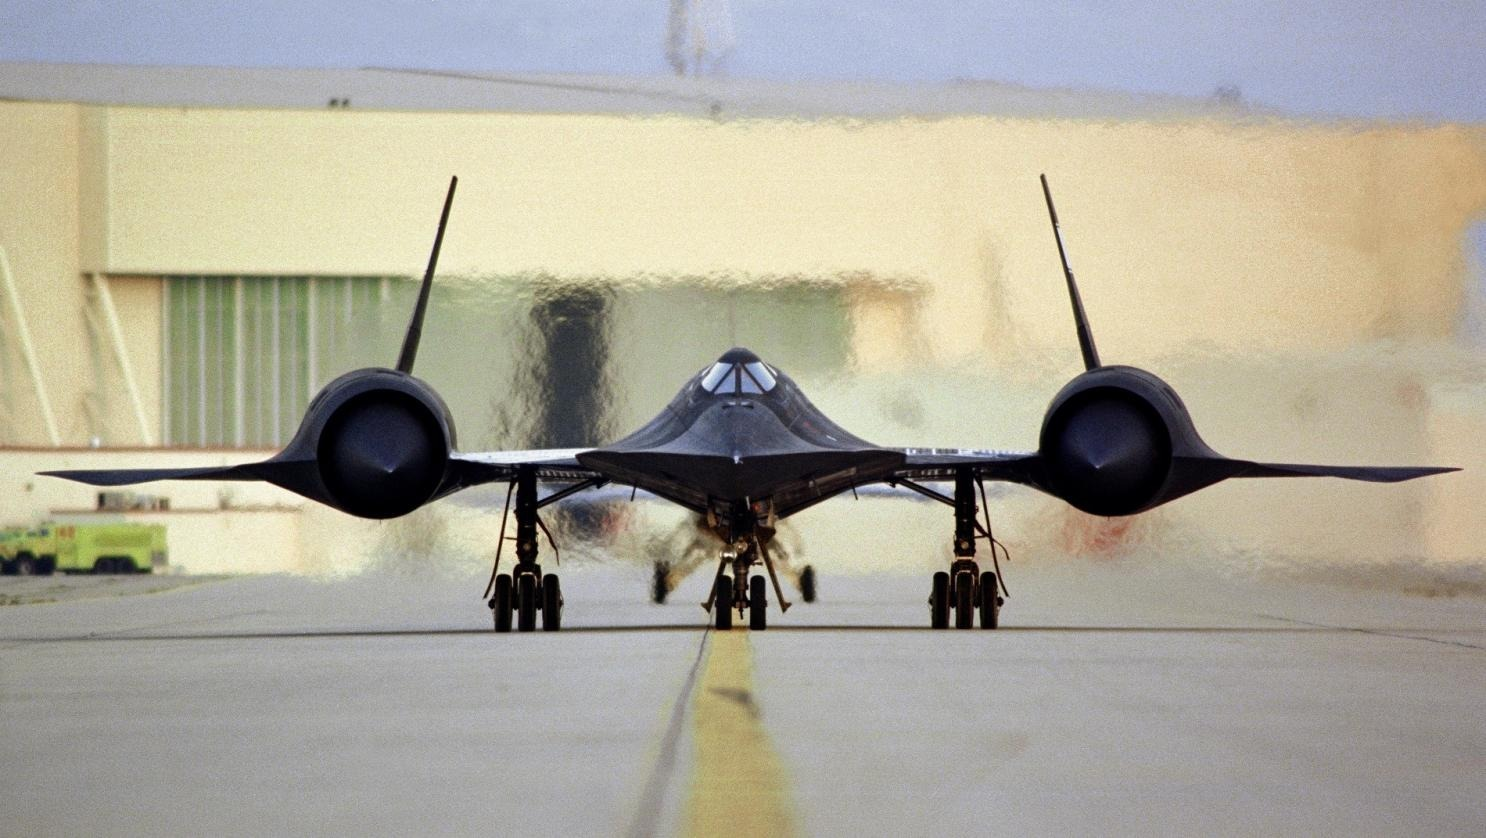 A Mach 6 SR-71? This Is How Amazing (And Deadly) the SR-72 Could Be. - Warrior Maven